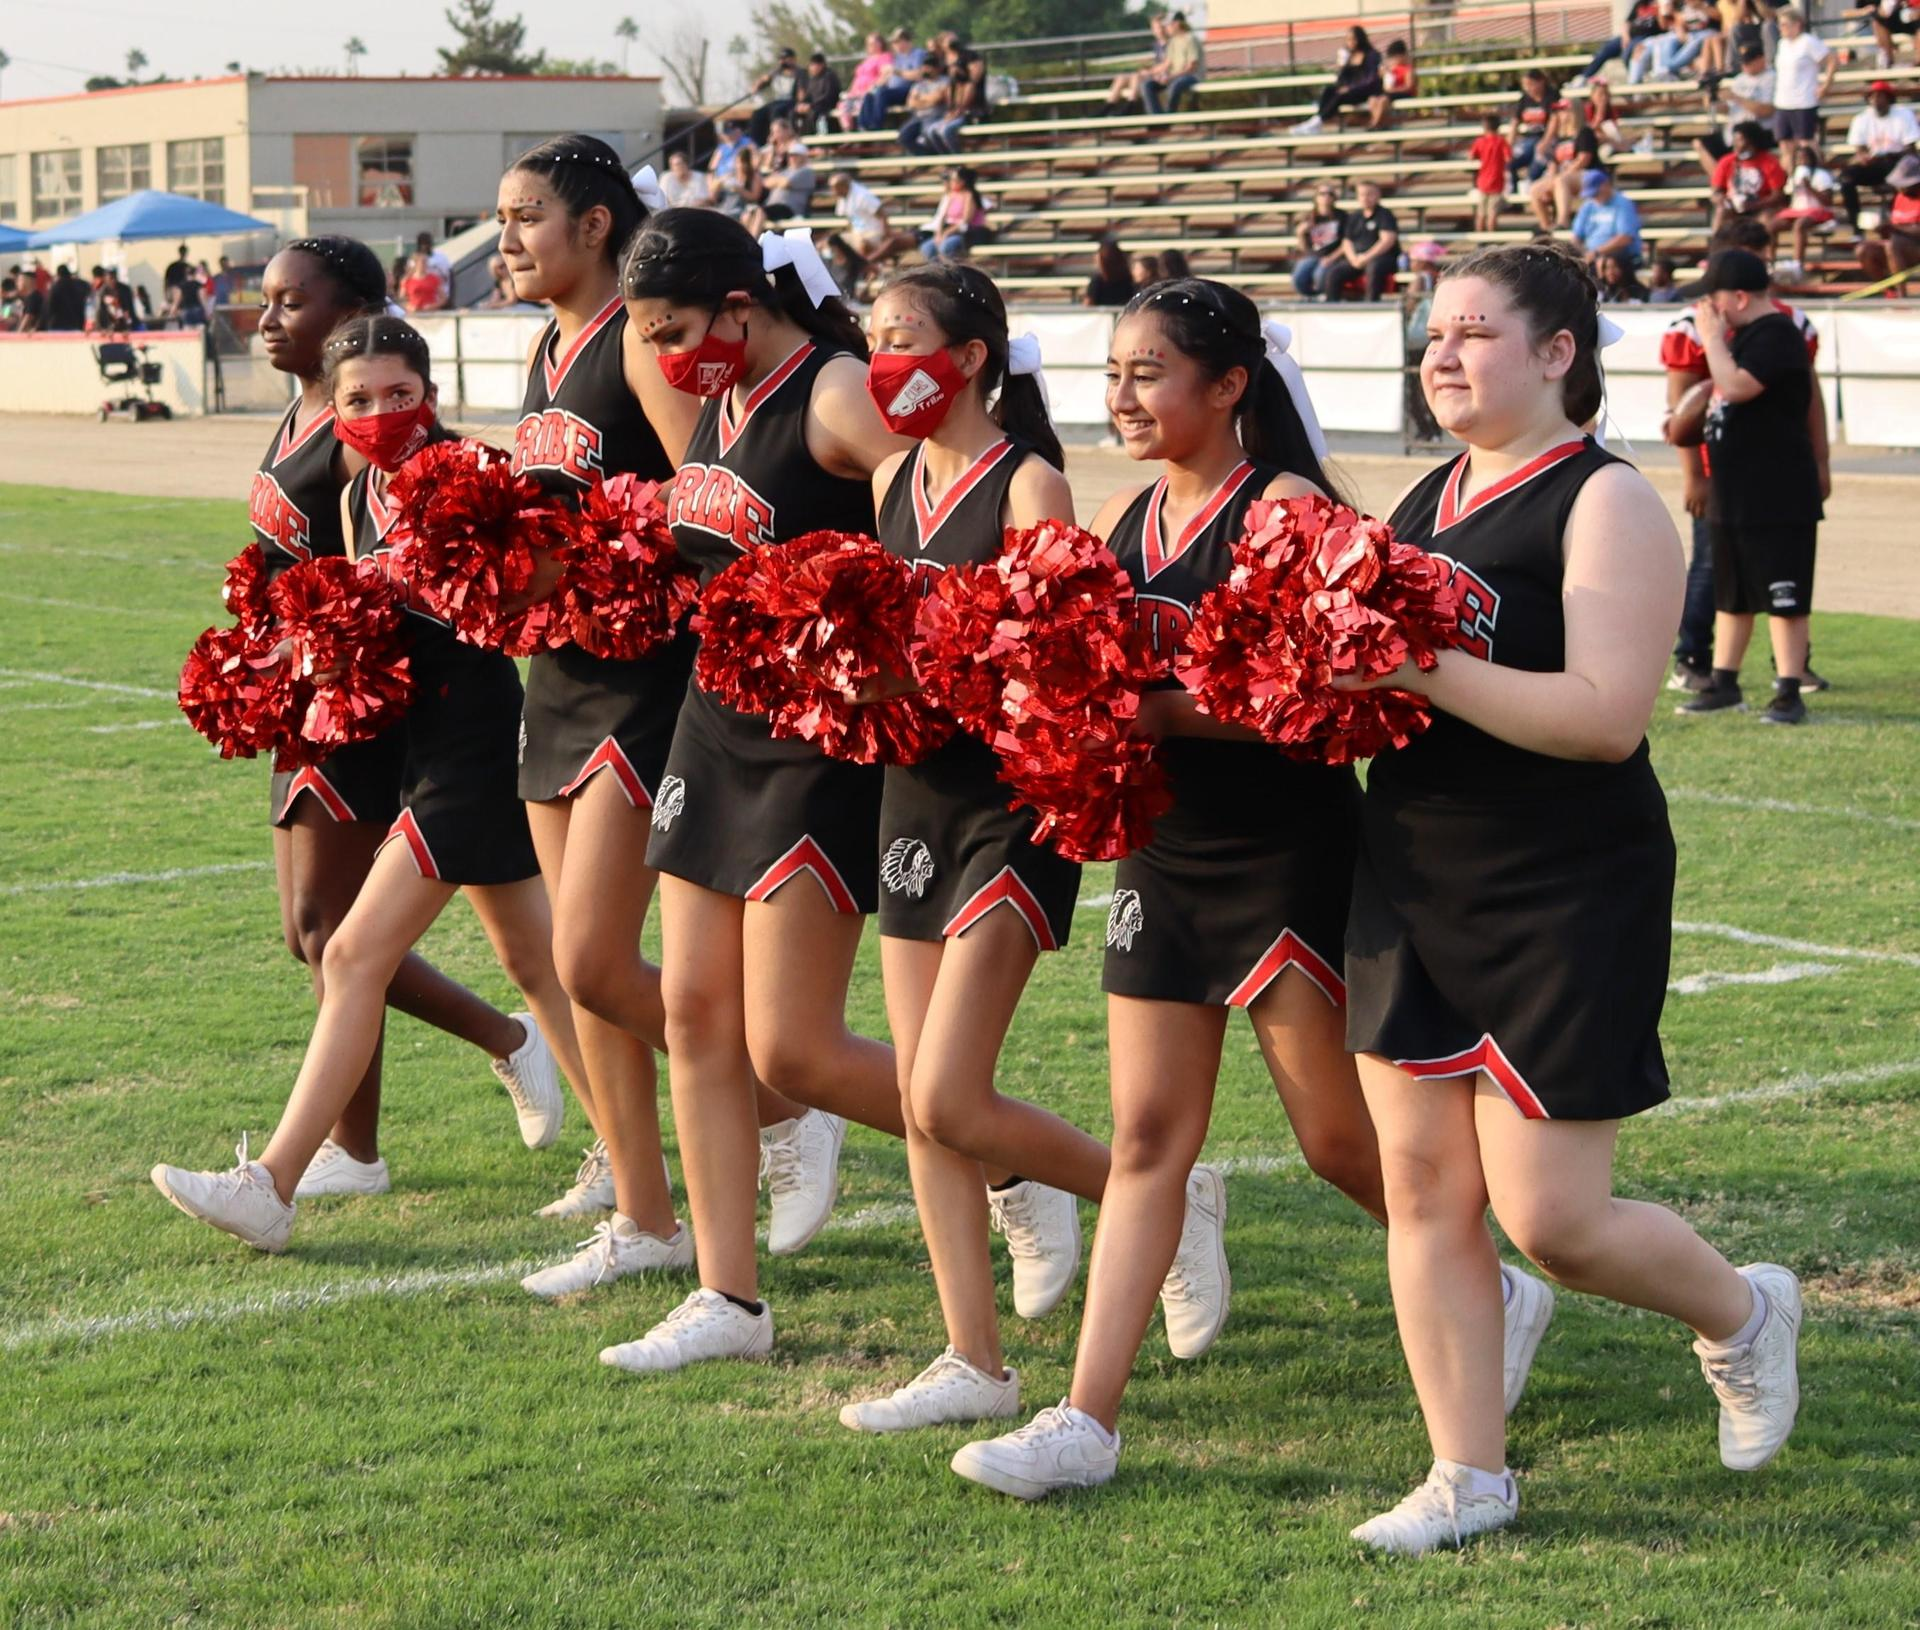 JV girls cheering at the football game against Lemoore